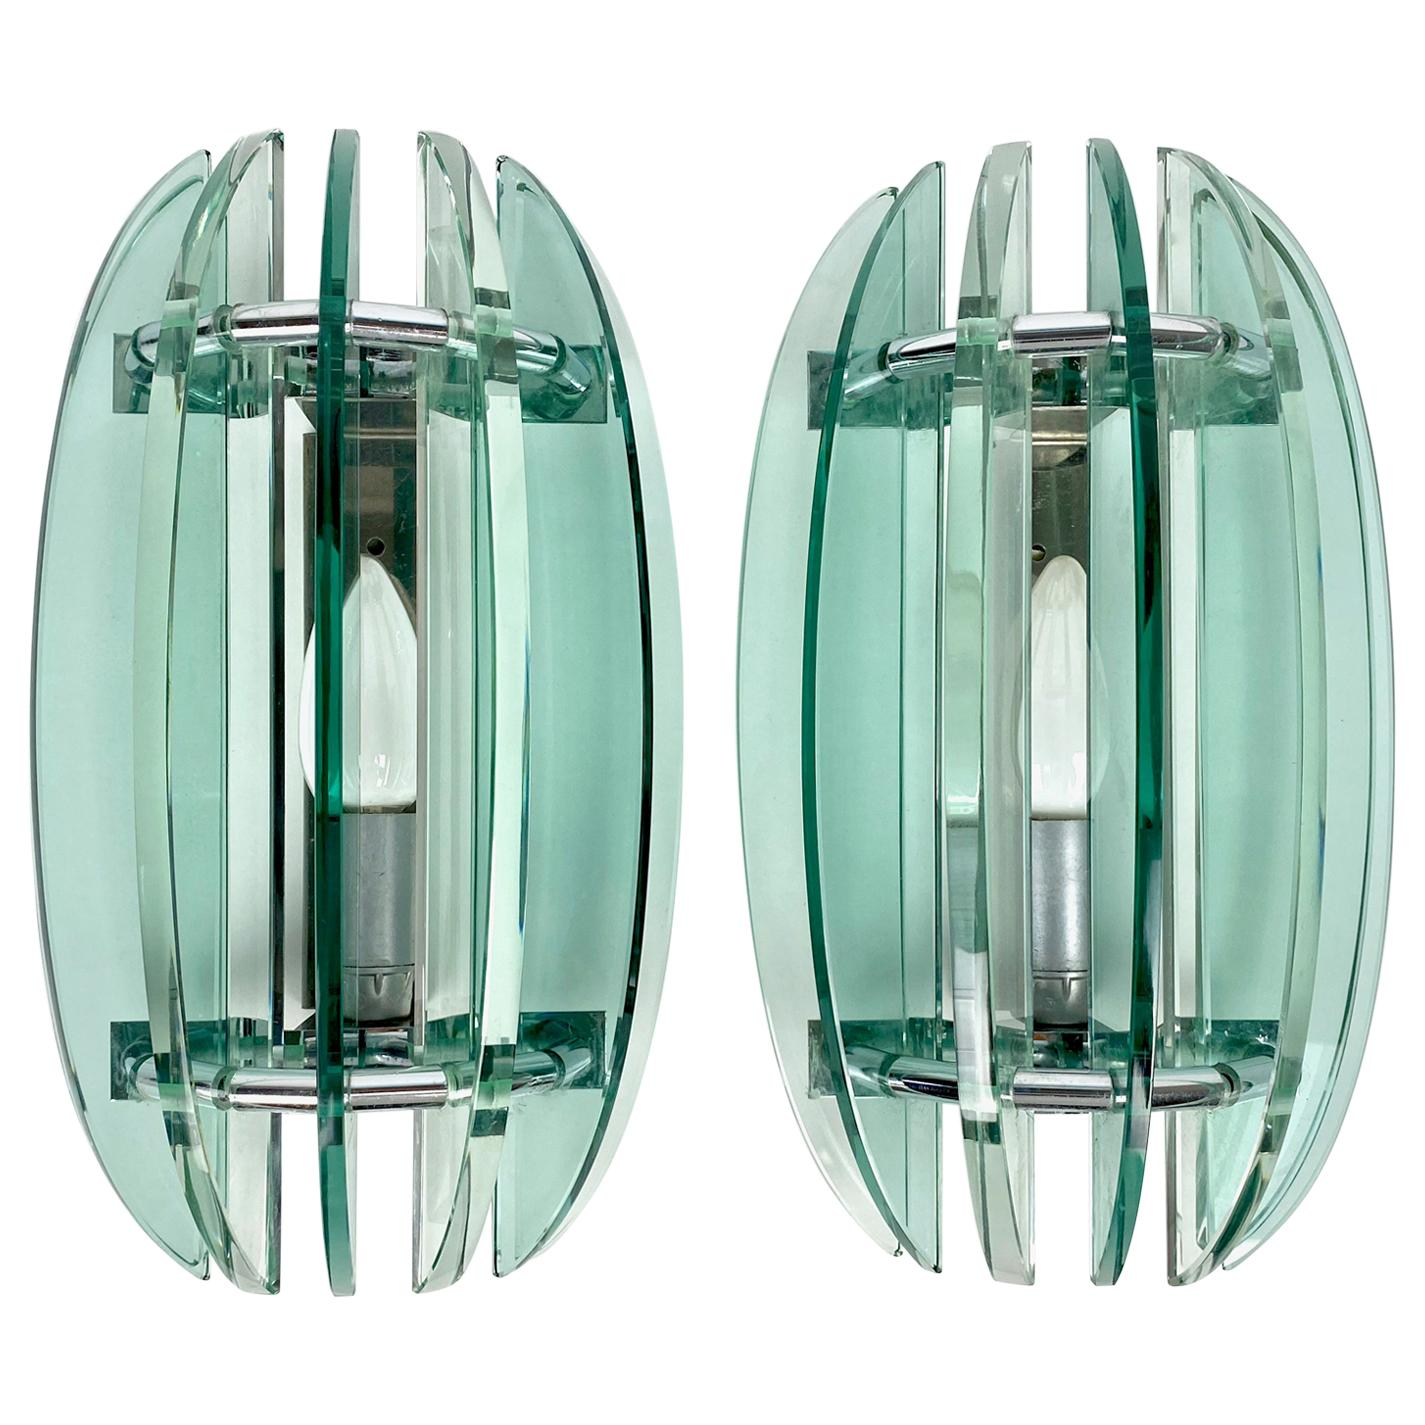 Pair of Wall Sconces Lamp in green Glass and Chrome by Veca, Italy, 1970s